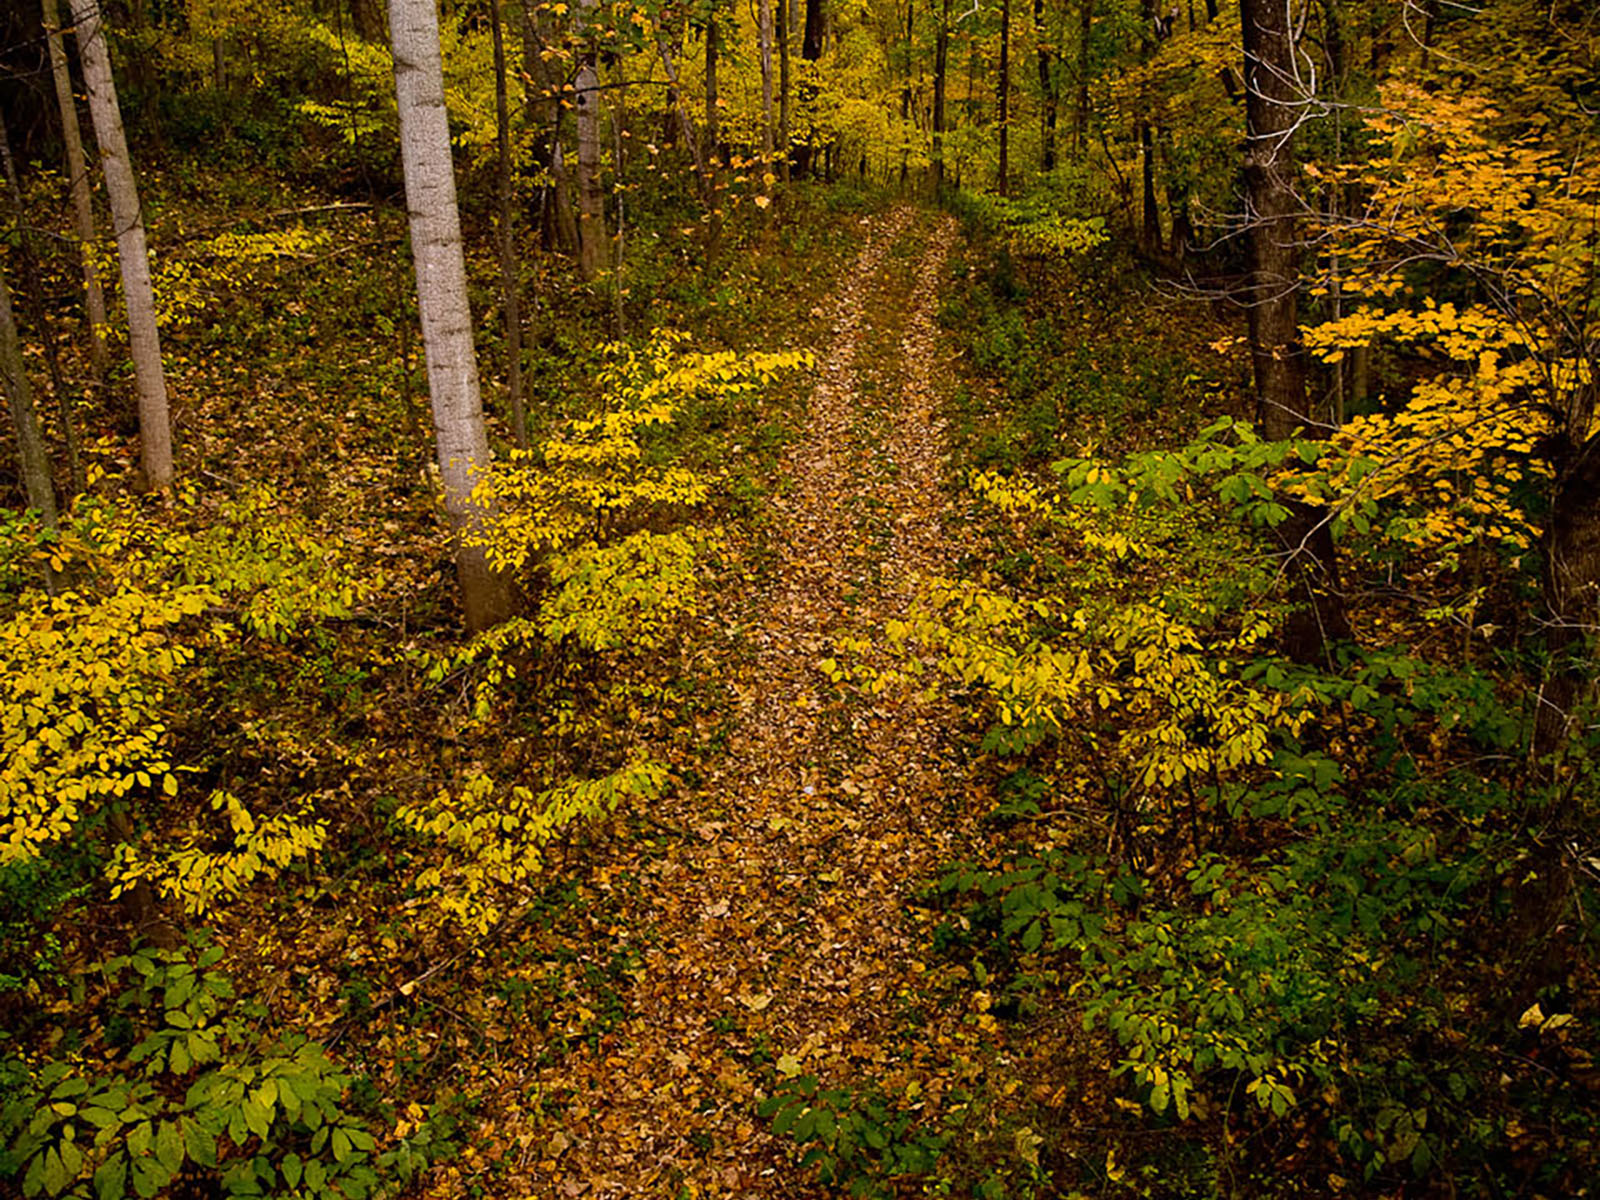 hight resolution of autumn leaf color in a deciduous forest